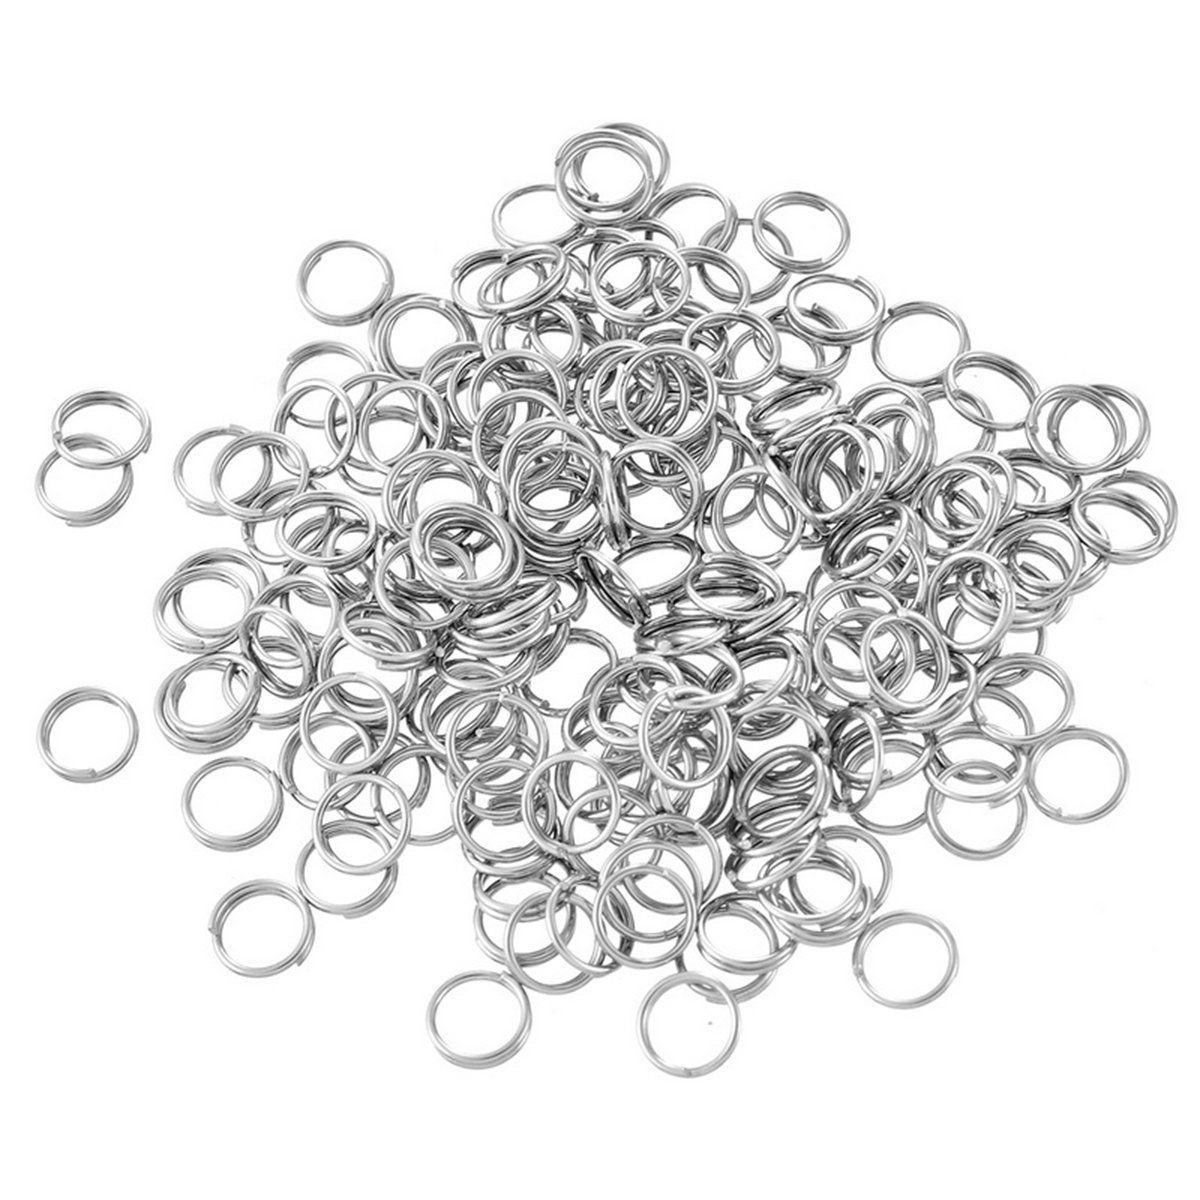 Angel Malone ® 100 x 5mm Hypo-Allergenic Surgical 304 Stainless Steel Split Rings Jewellery Making Findings UK SELLER